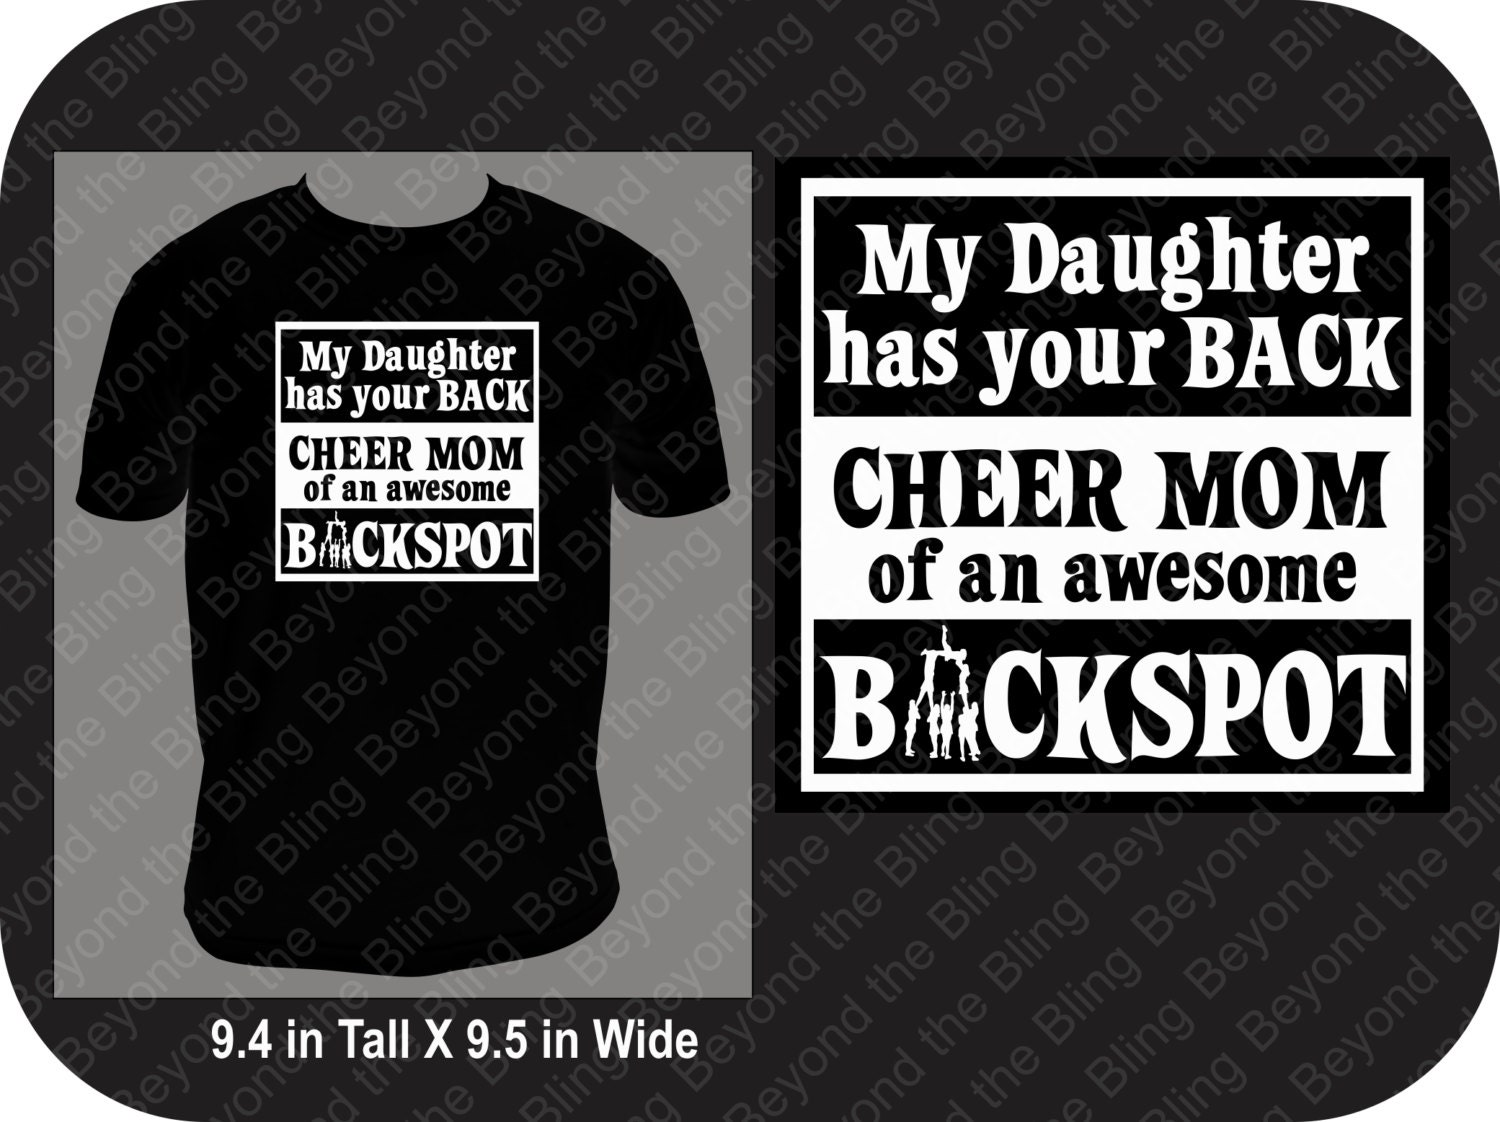 29 best Cheer DAD images on Pinterest | Cheer dad shirts ... |Cheer Mom Shirts Sayings